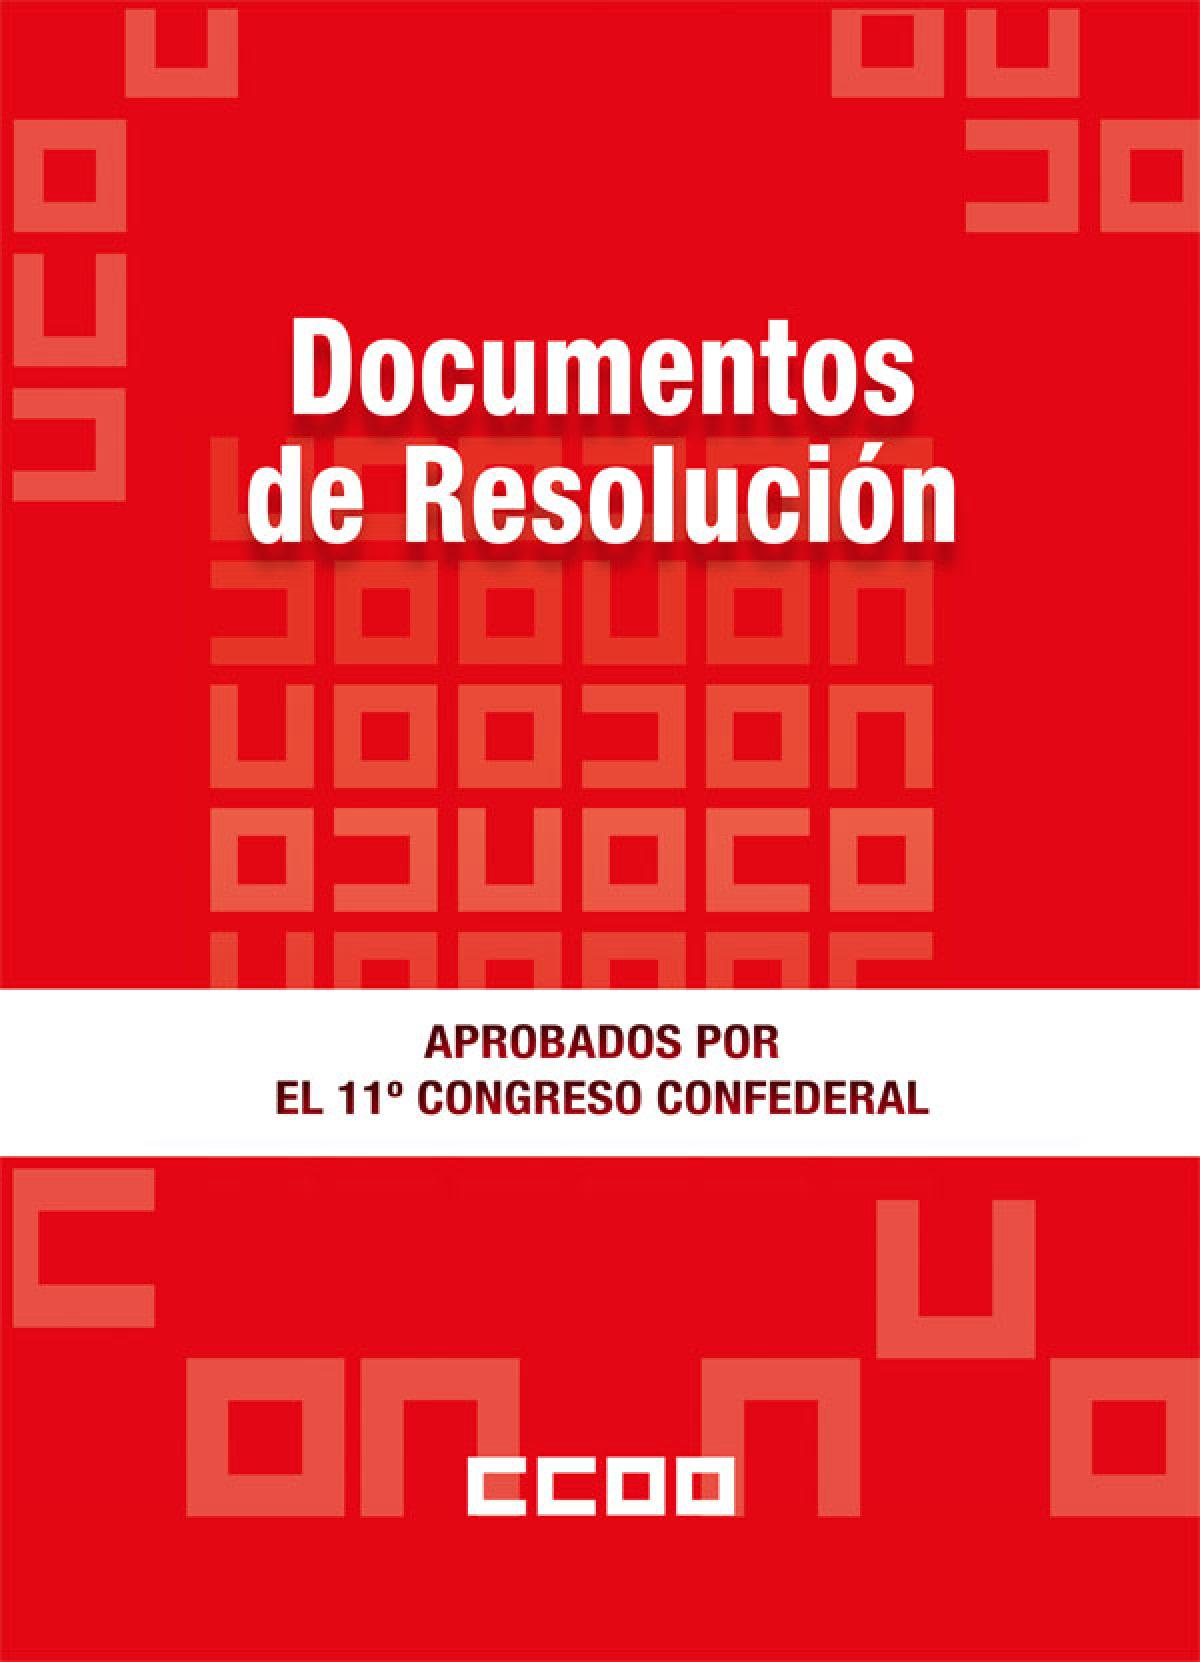 Documentos de Resolución del XI Congreso Confederal